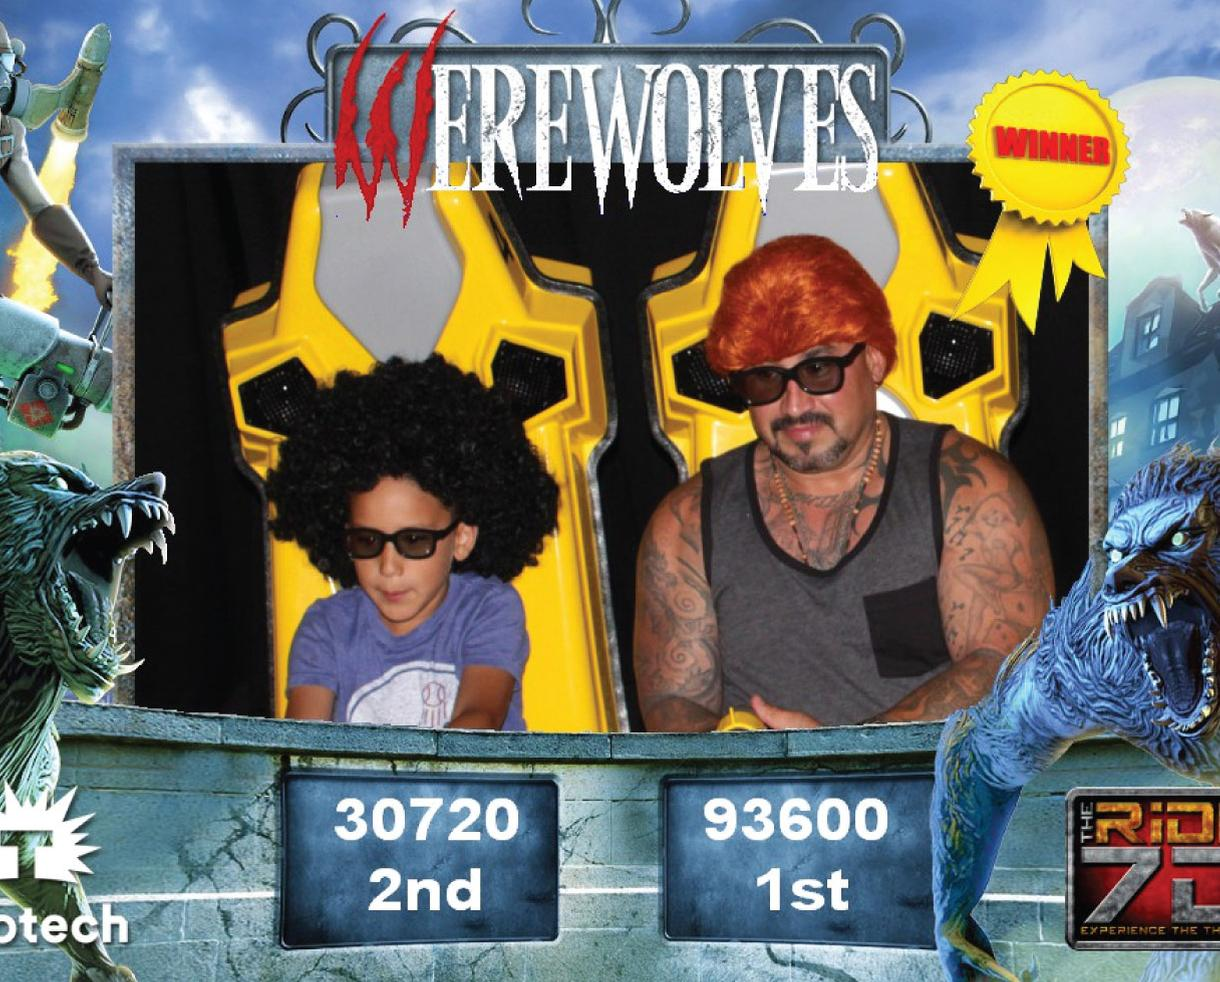 THE RiDE 7D: 3-Virtual Thrill RiDE Package for 2 Riders